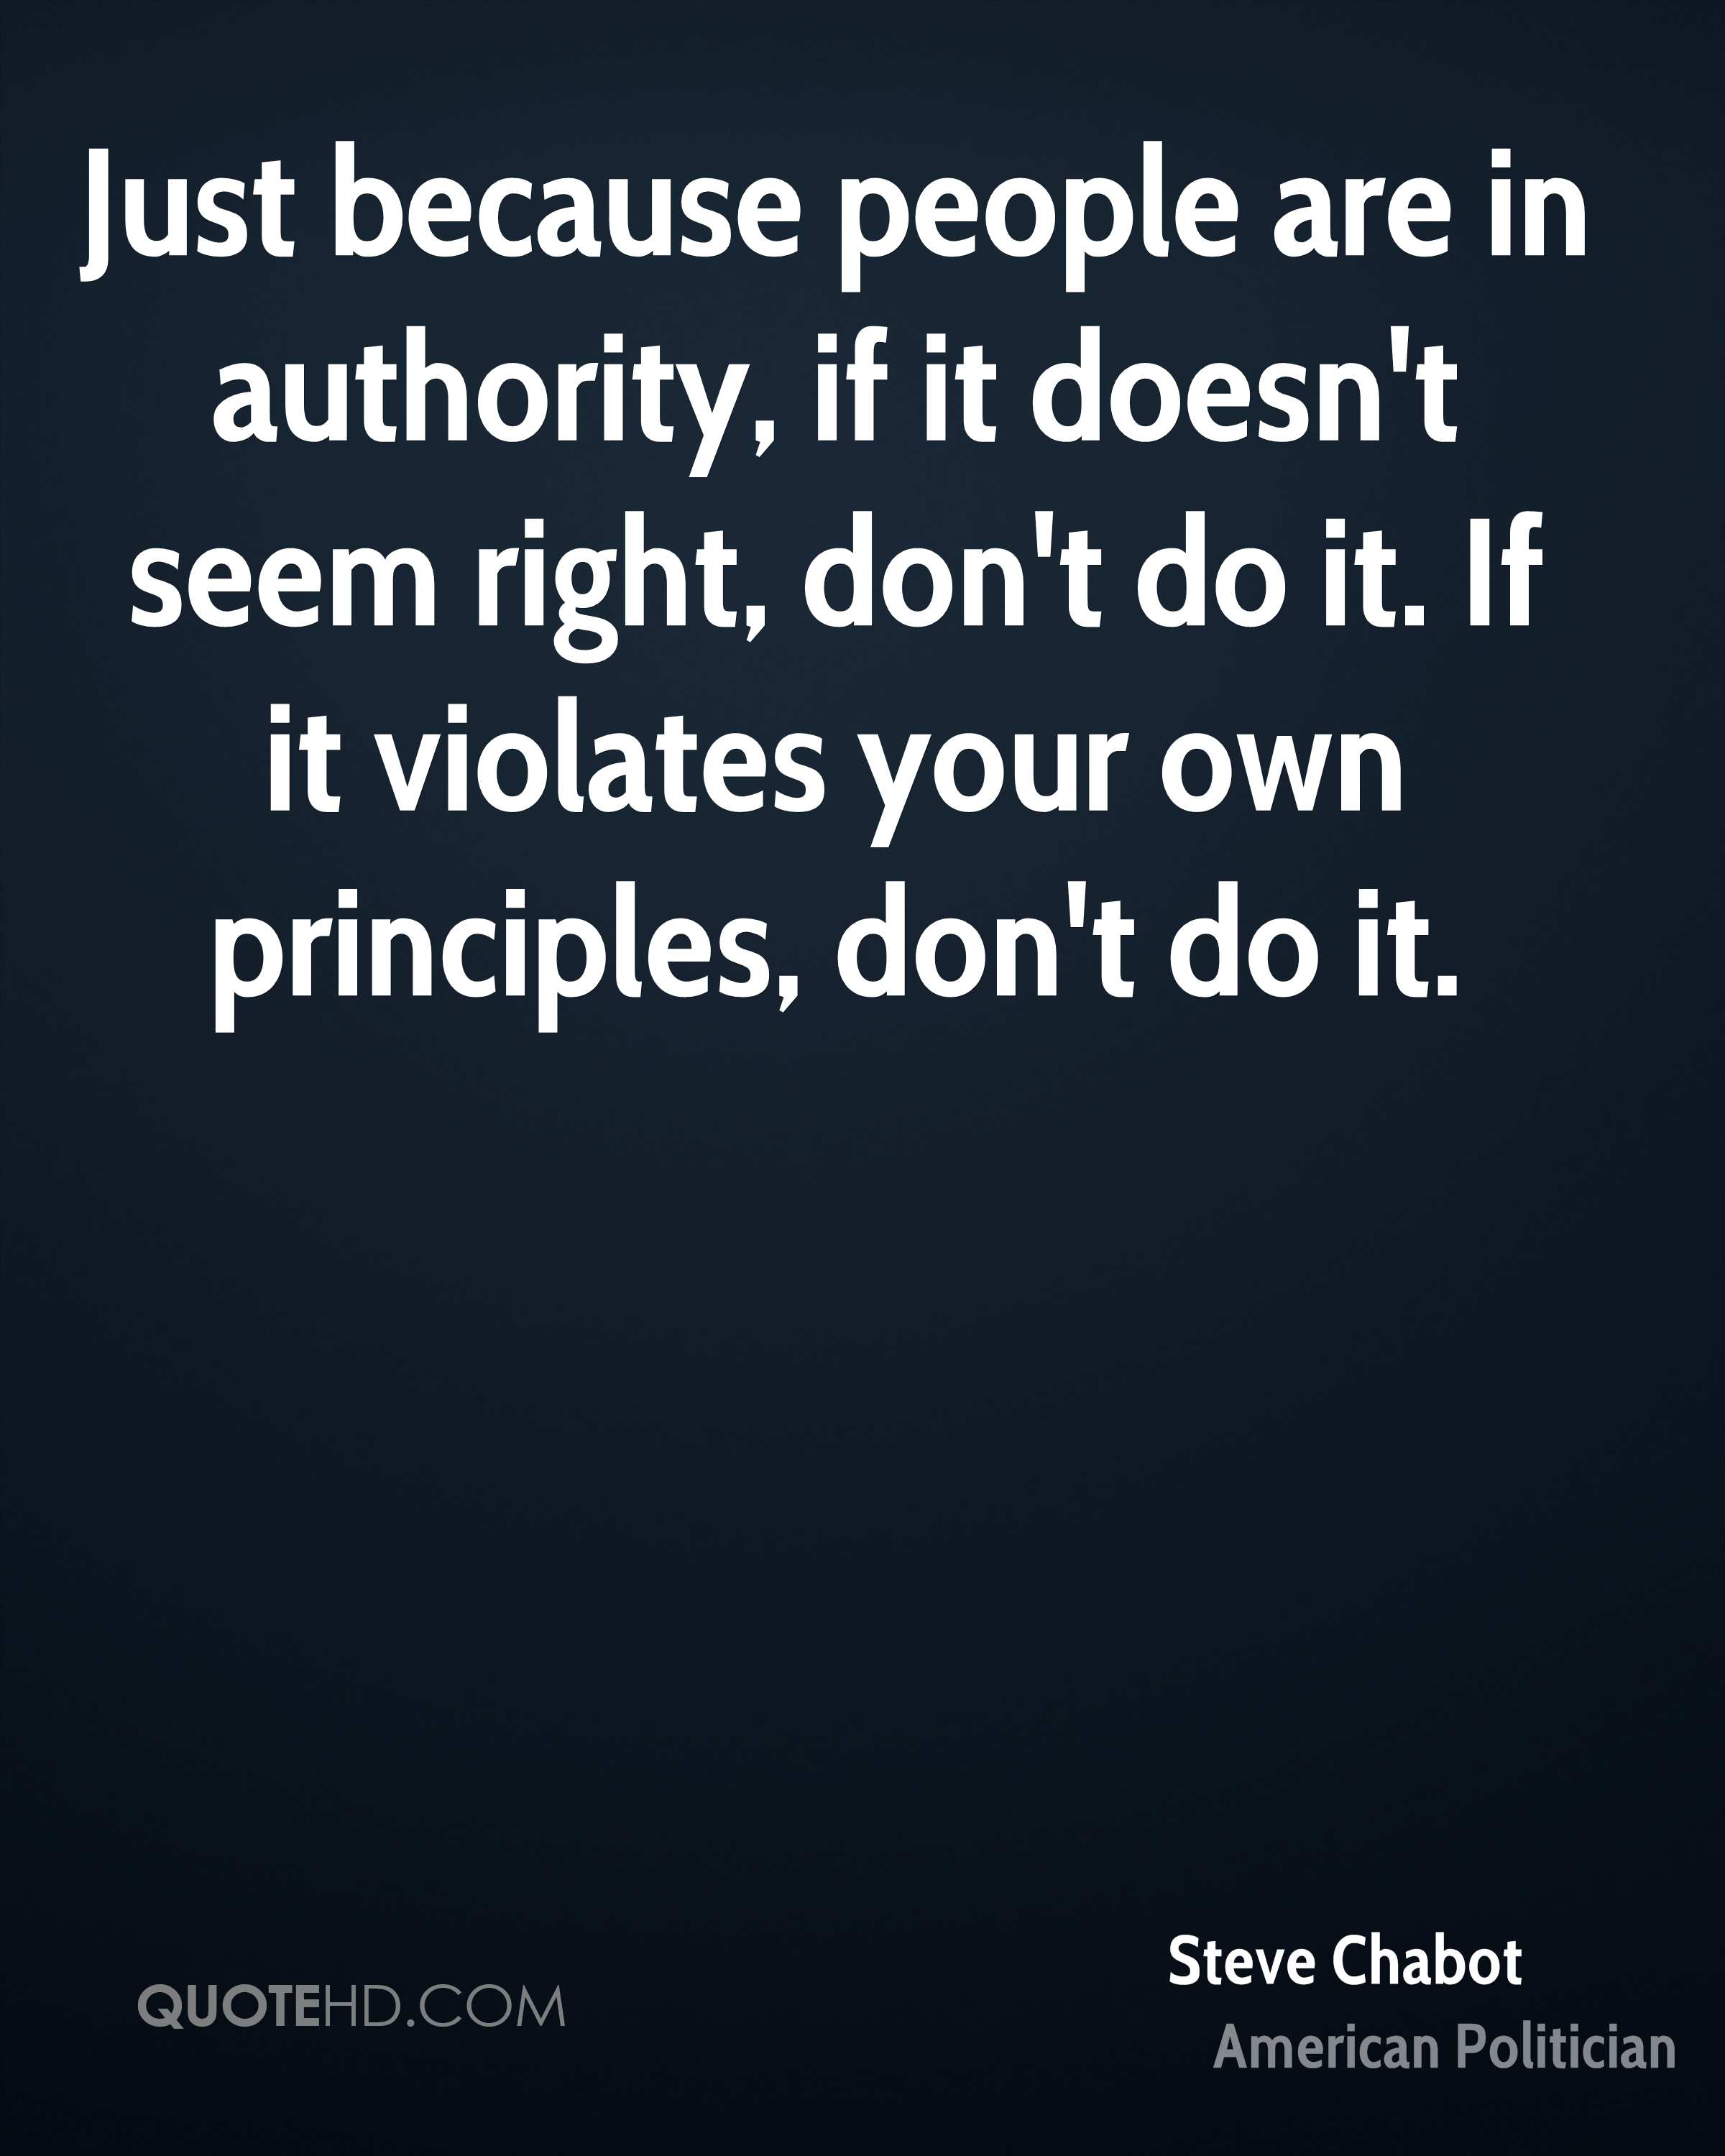 Just because people are in authority, if it doesn't seem right, don't do it. If it violates your own principles, don't do it.